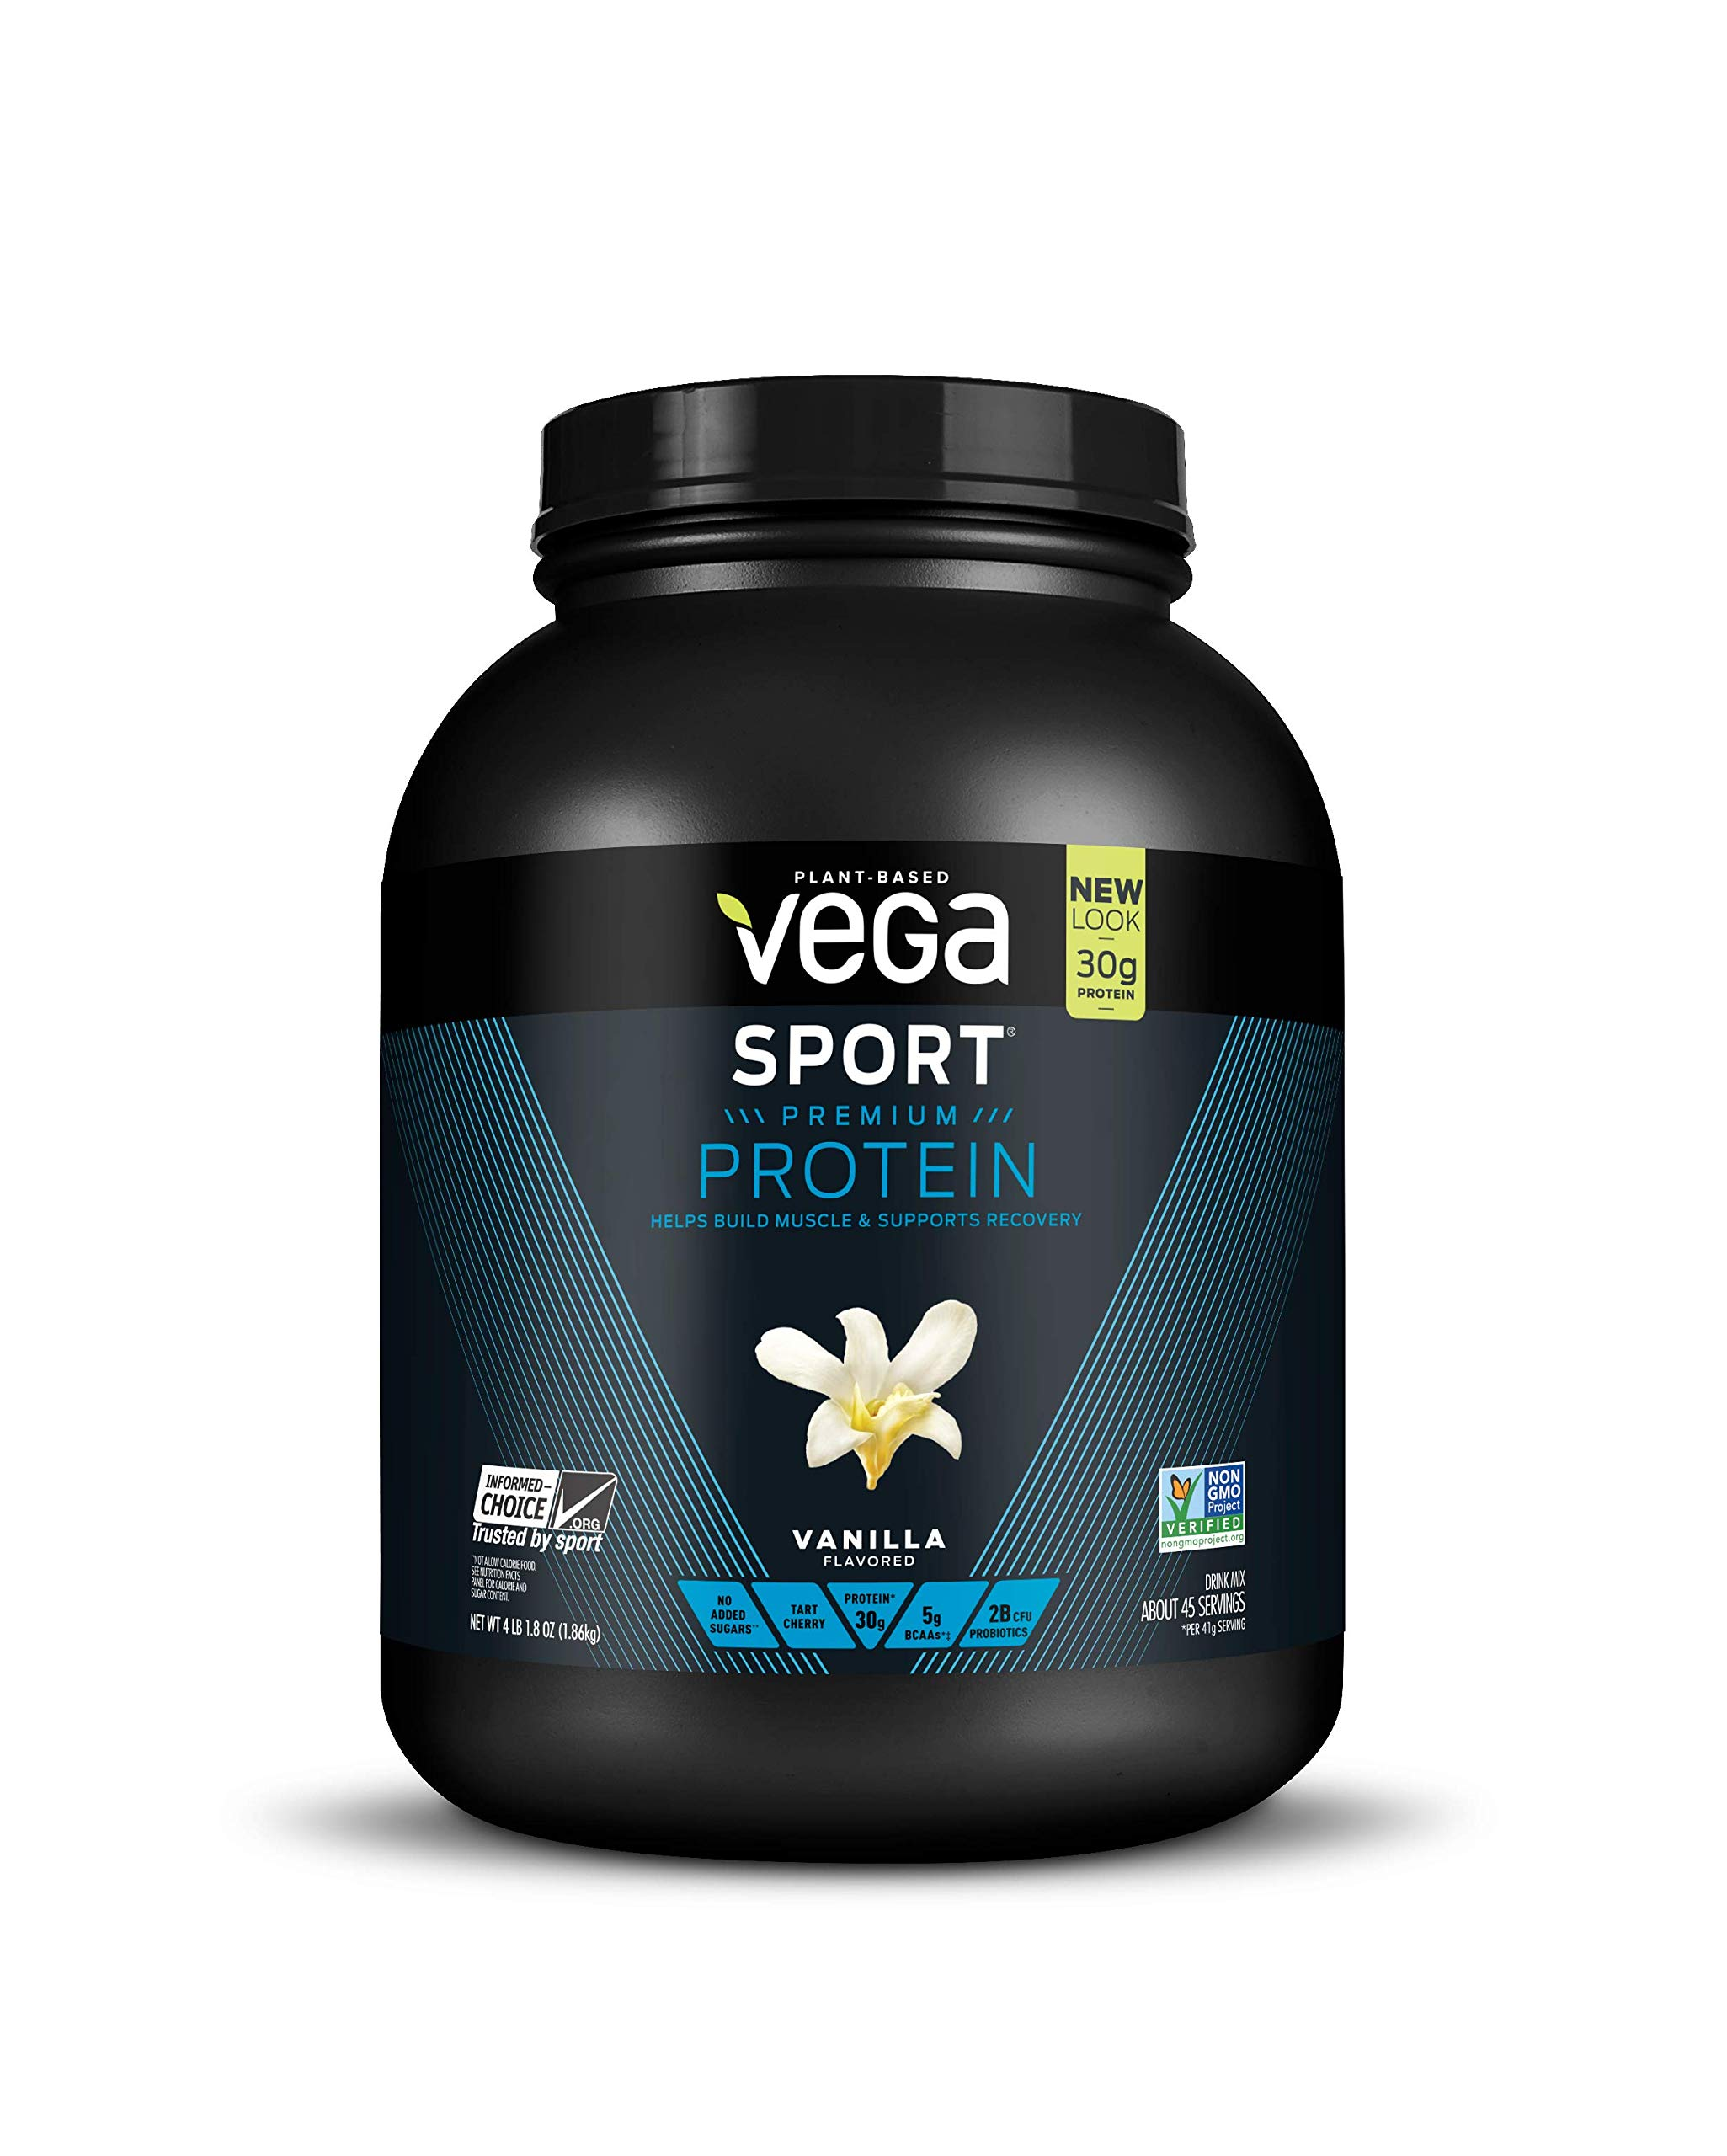 Vega Sport Protein Powder Vanilla (45 Servings, 65.6 Oz) Plant Based Vegan Protein Powder, BCAAs, Amino Acids, Tart Cherry, Non Dairy, Gluten Free, Non GMO (Packaging May Vary)